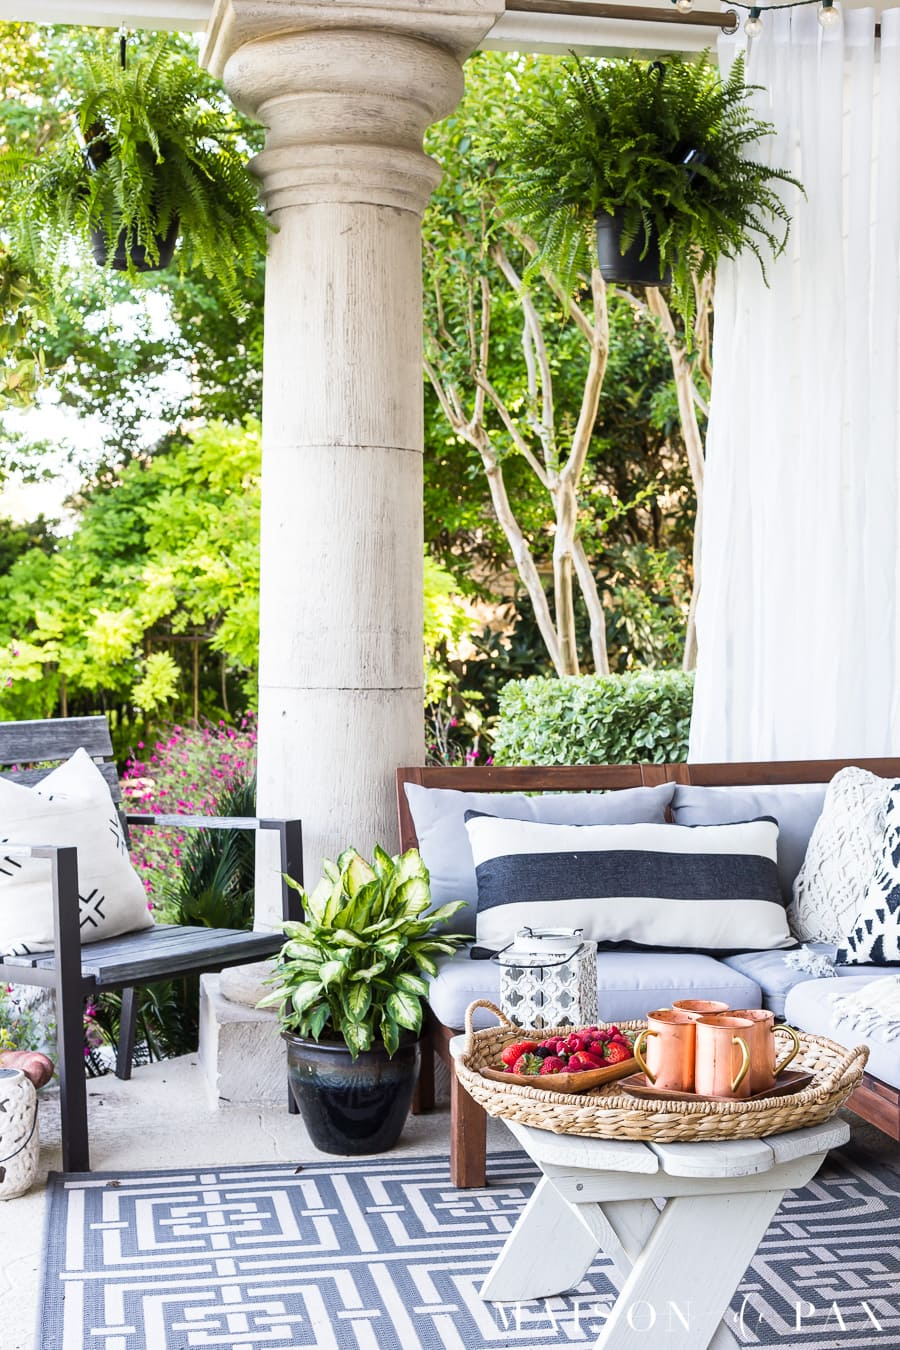 Outdoor textiles make all the difference! Find out where to get these gorgeous accents for your patio! #outdoorliving #patio #patiodecor #blackandwhite #succulents #backporch #outdoorentertaining